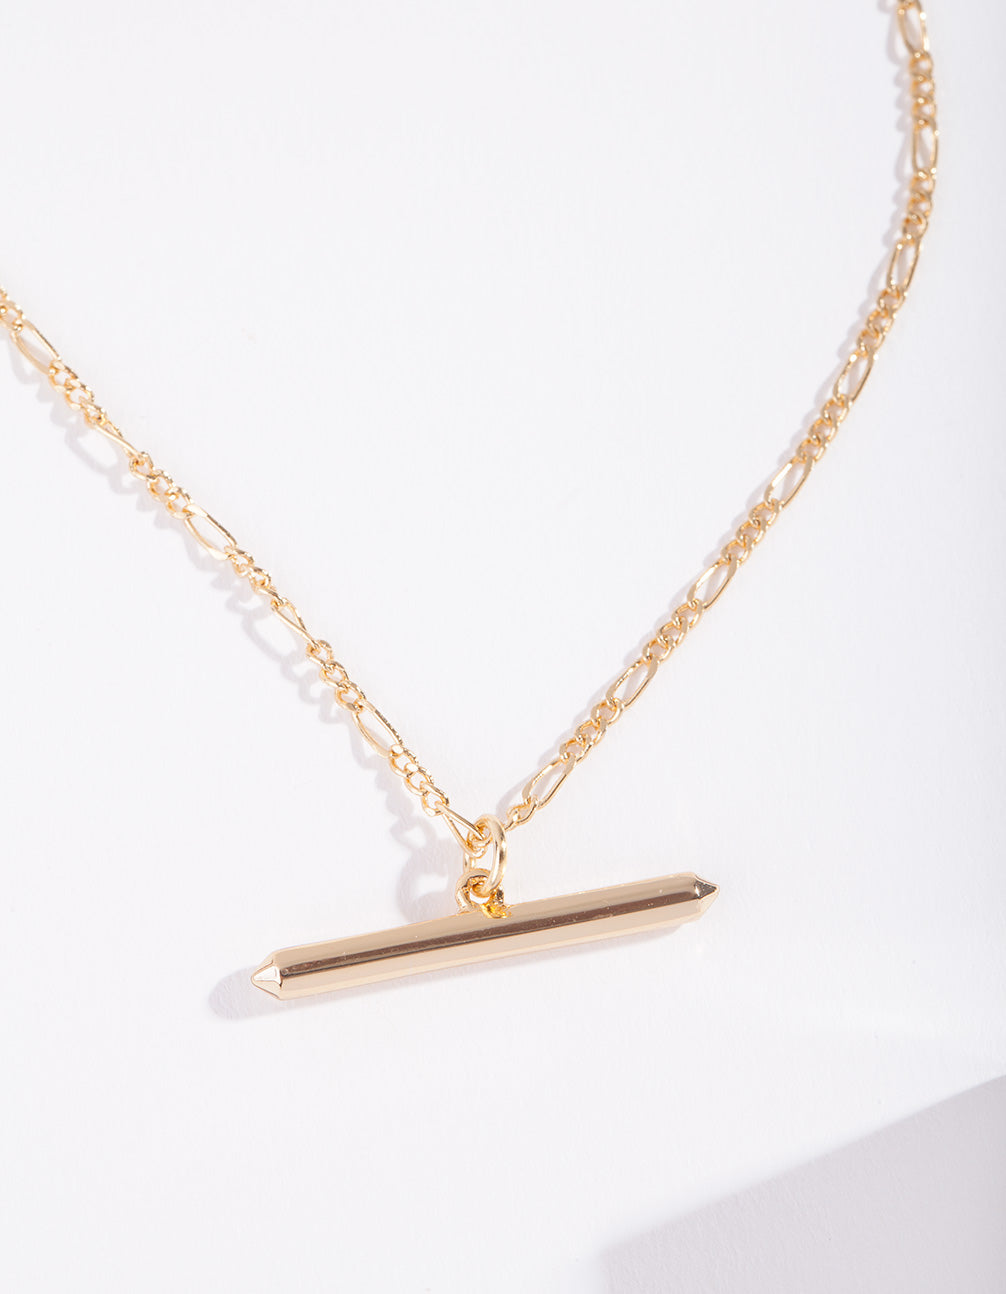 Real Gold Plated Bar Necklace